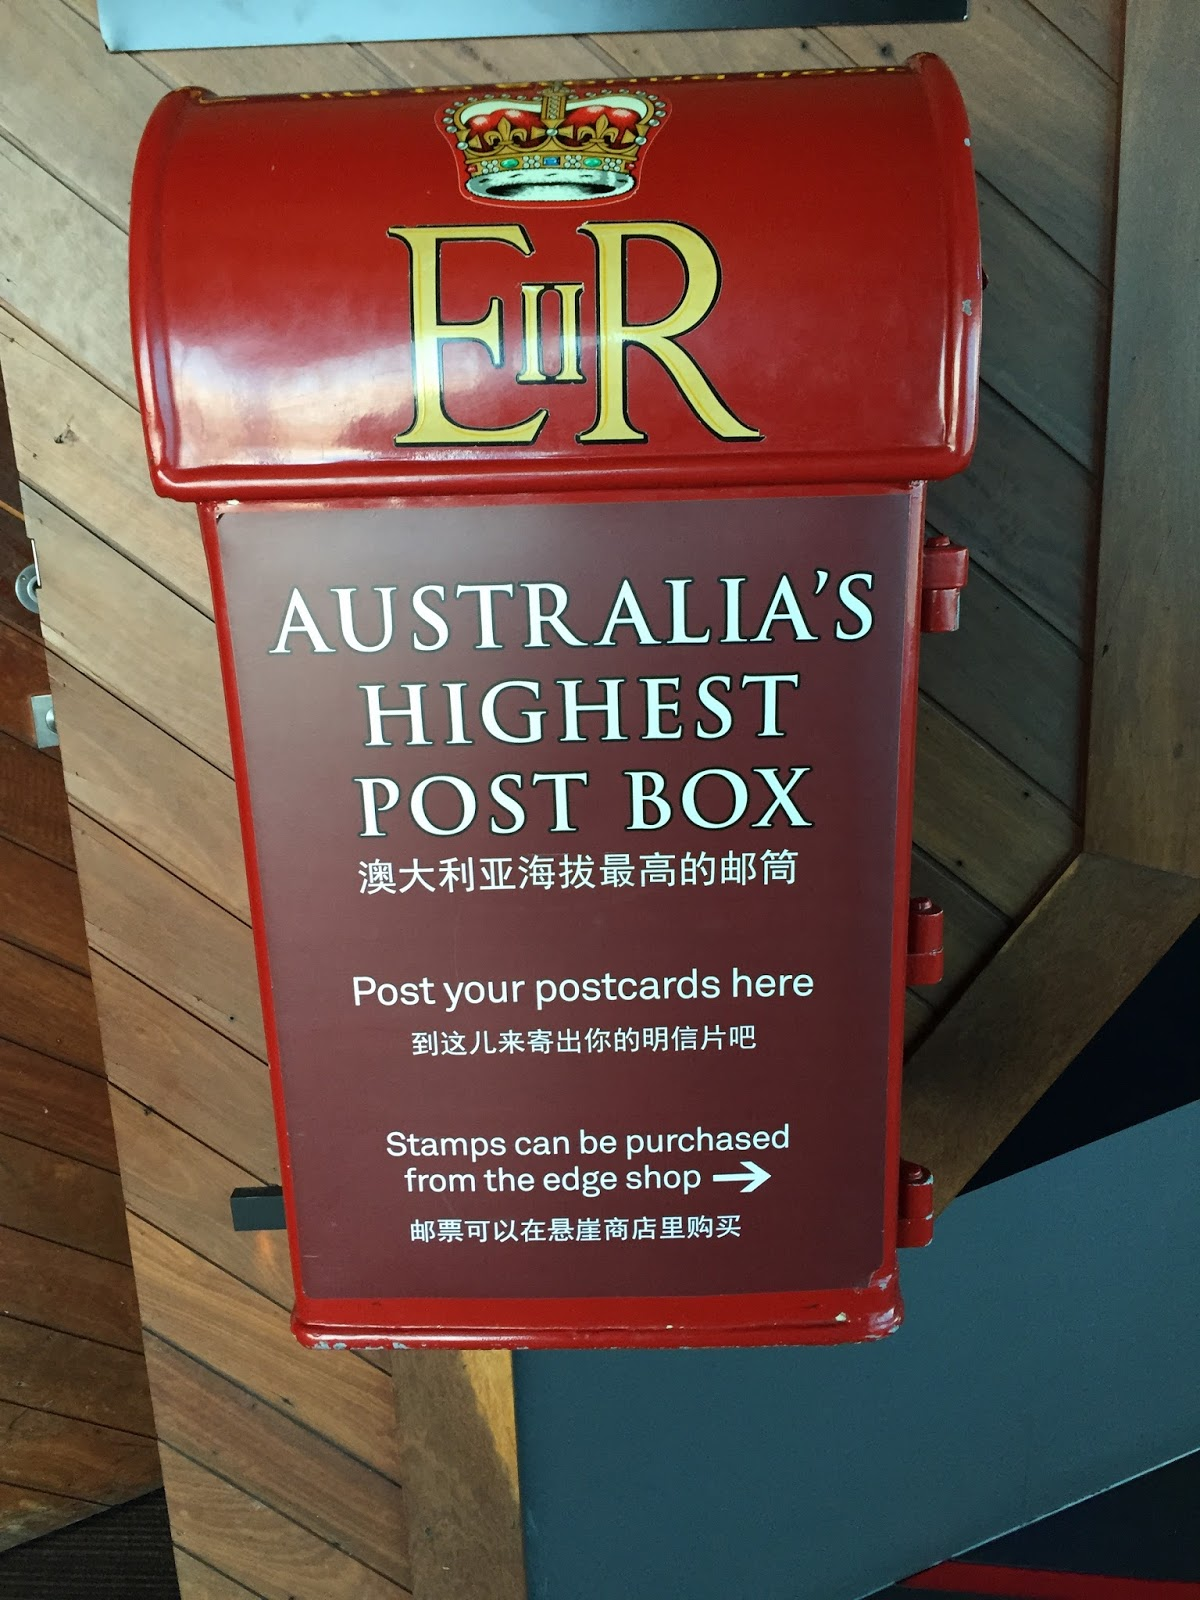 Incidentally You Can Find Australias Highest Post Office Box In The Skydeck